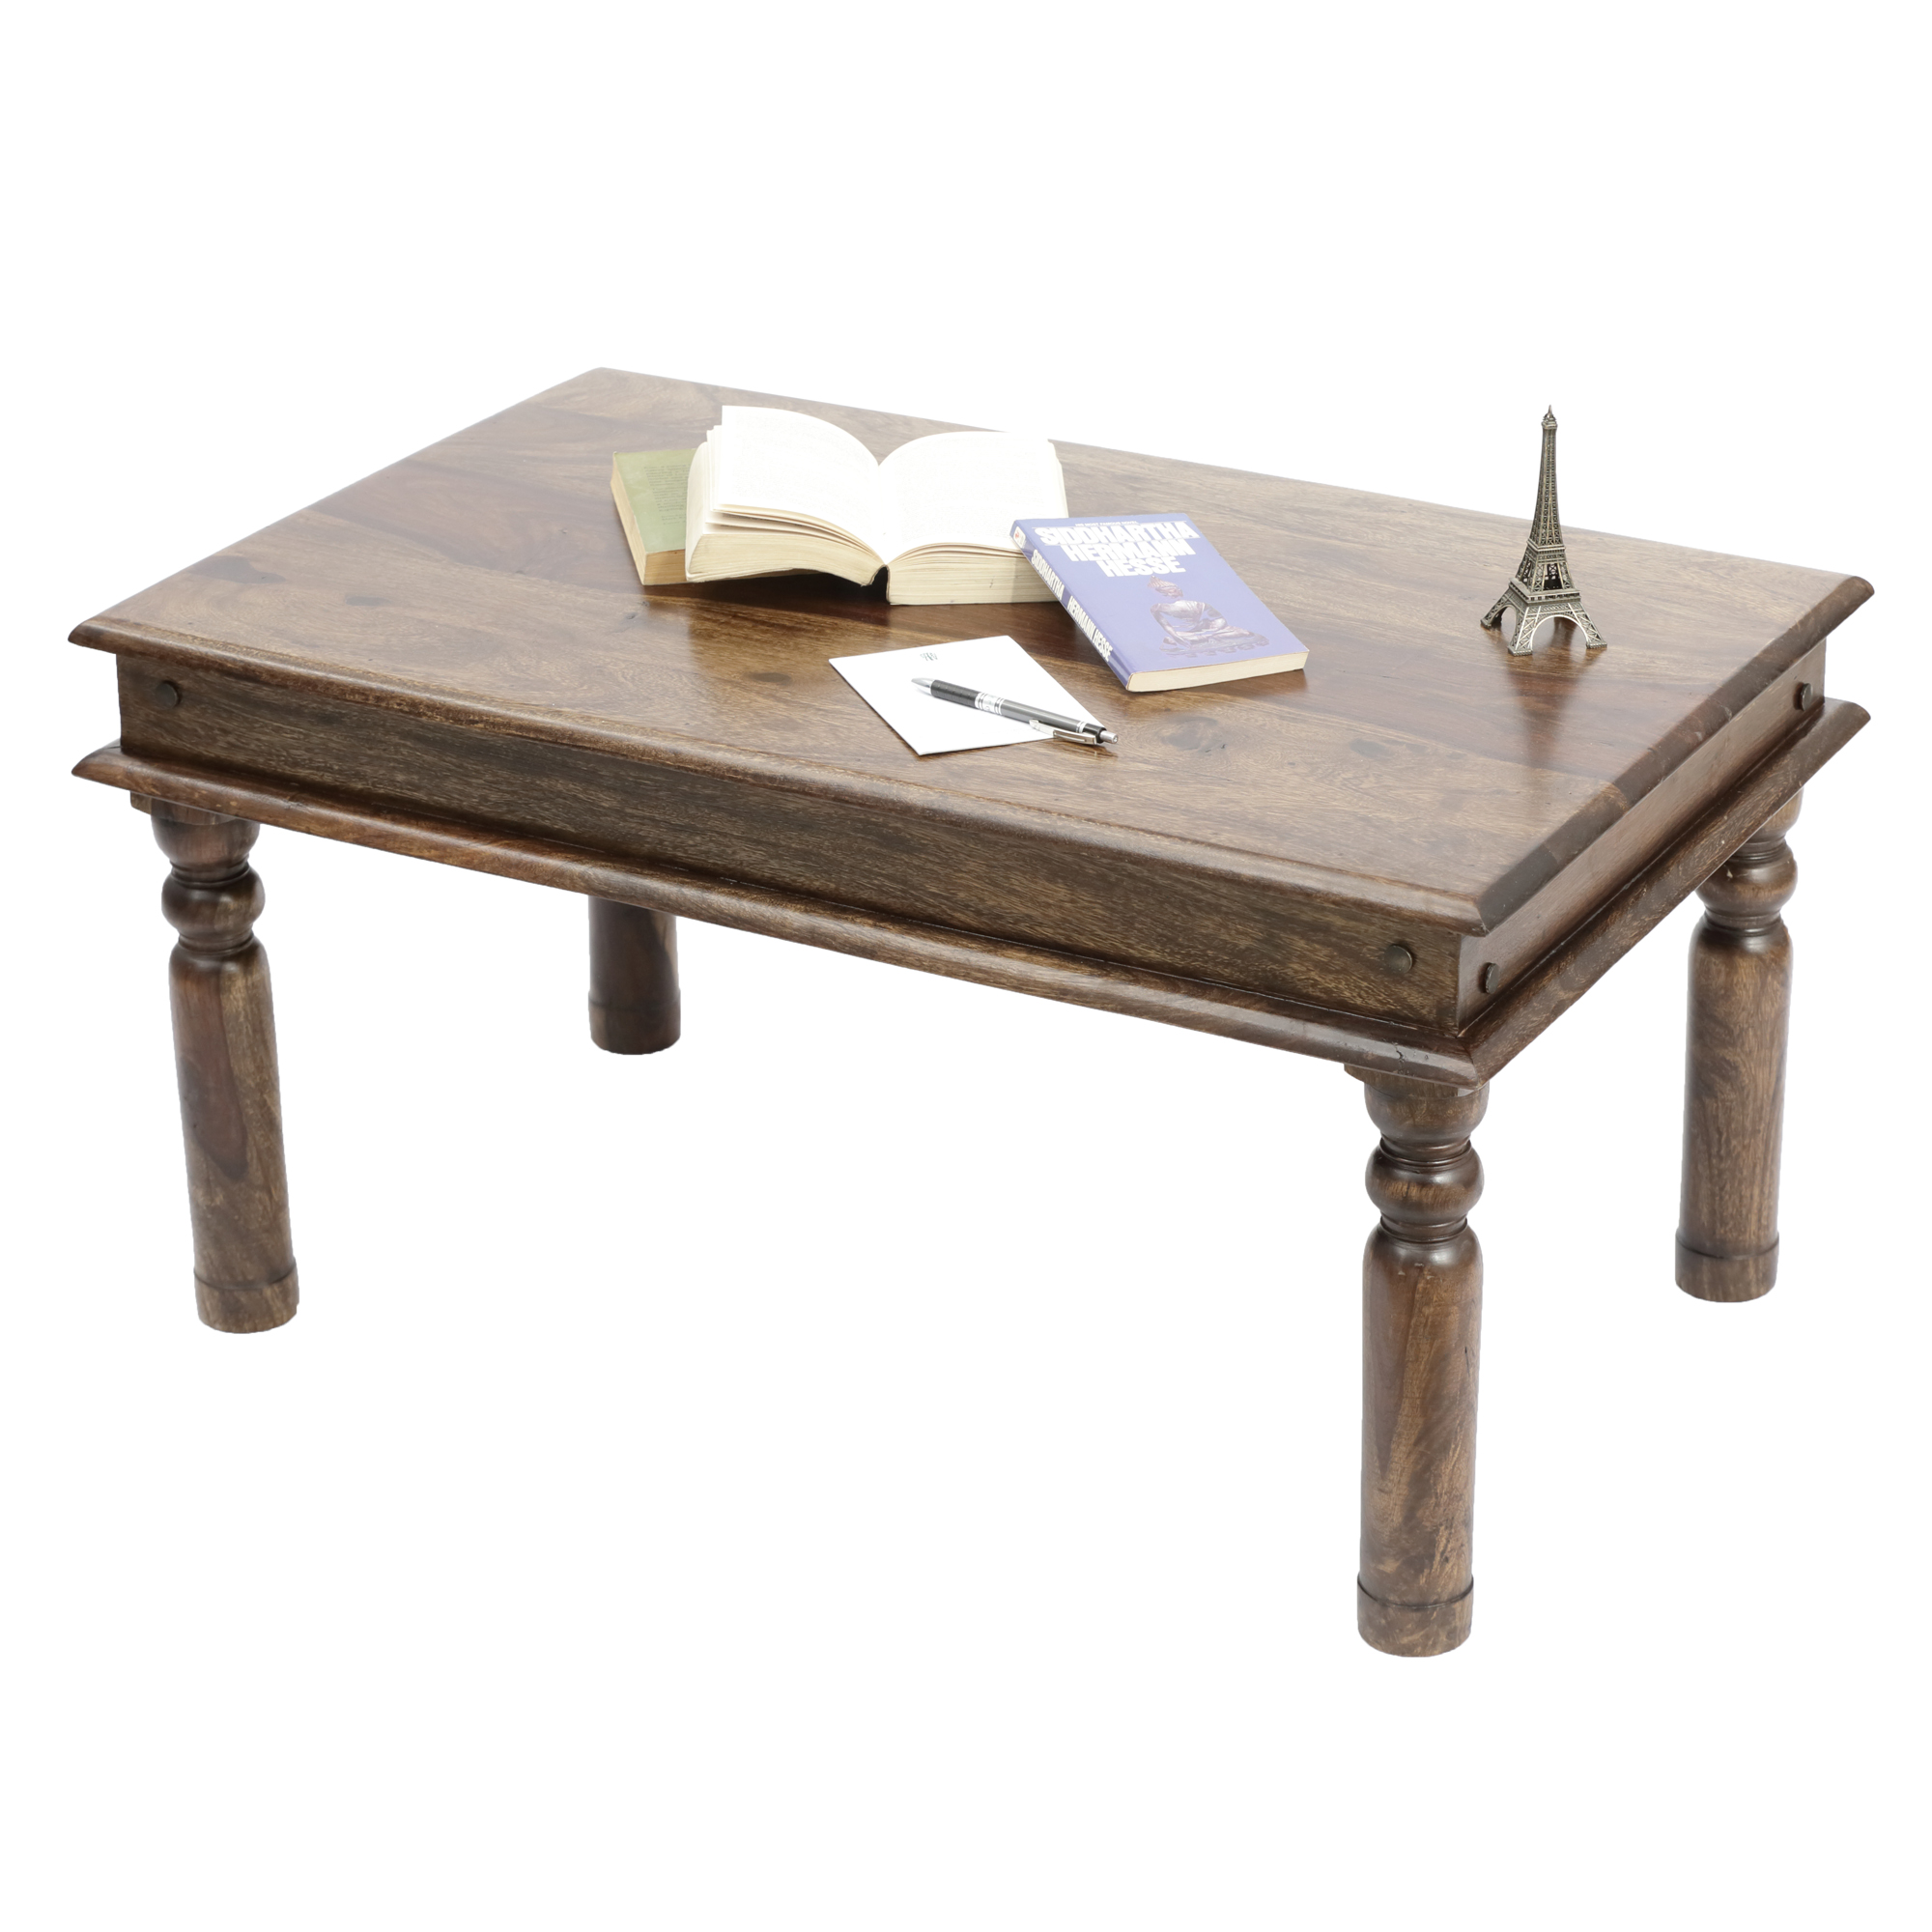 Bodhi Solid Wood Vintage Coffee Table in Provincial Teak Finish